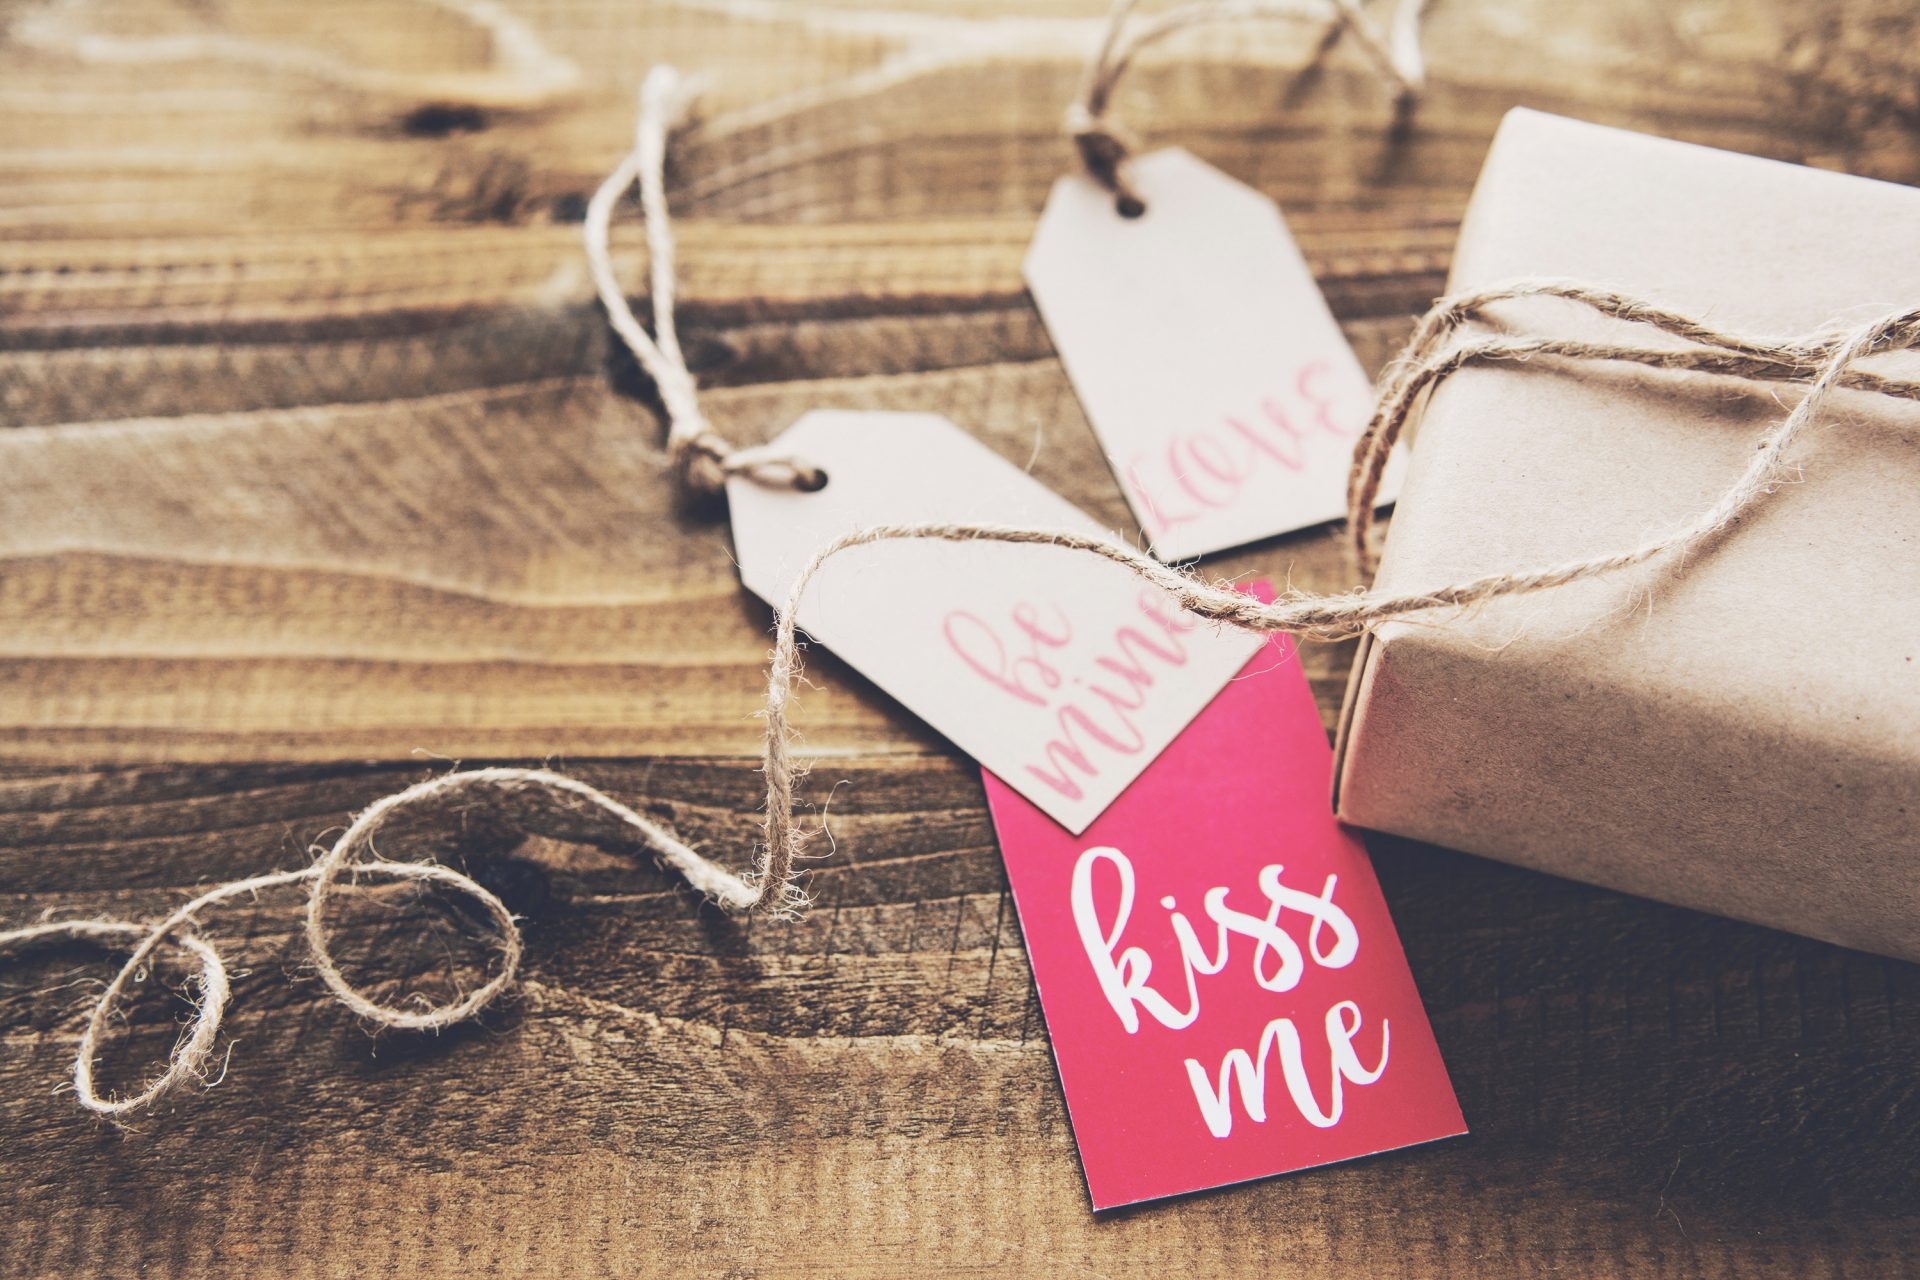 Gift with kiss me, love and be mine tags on a table